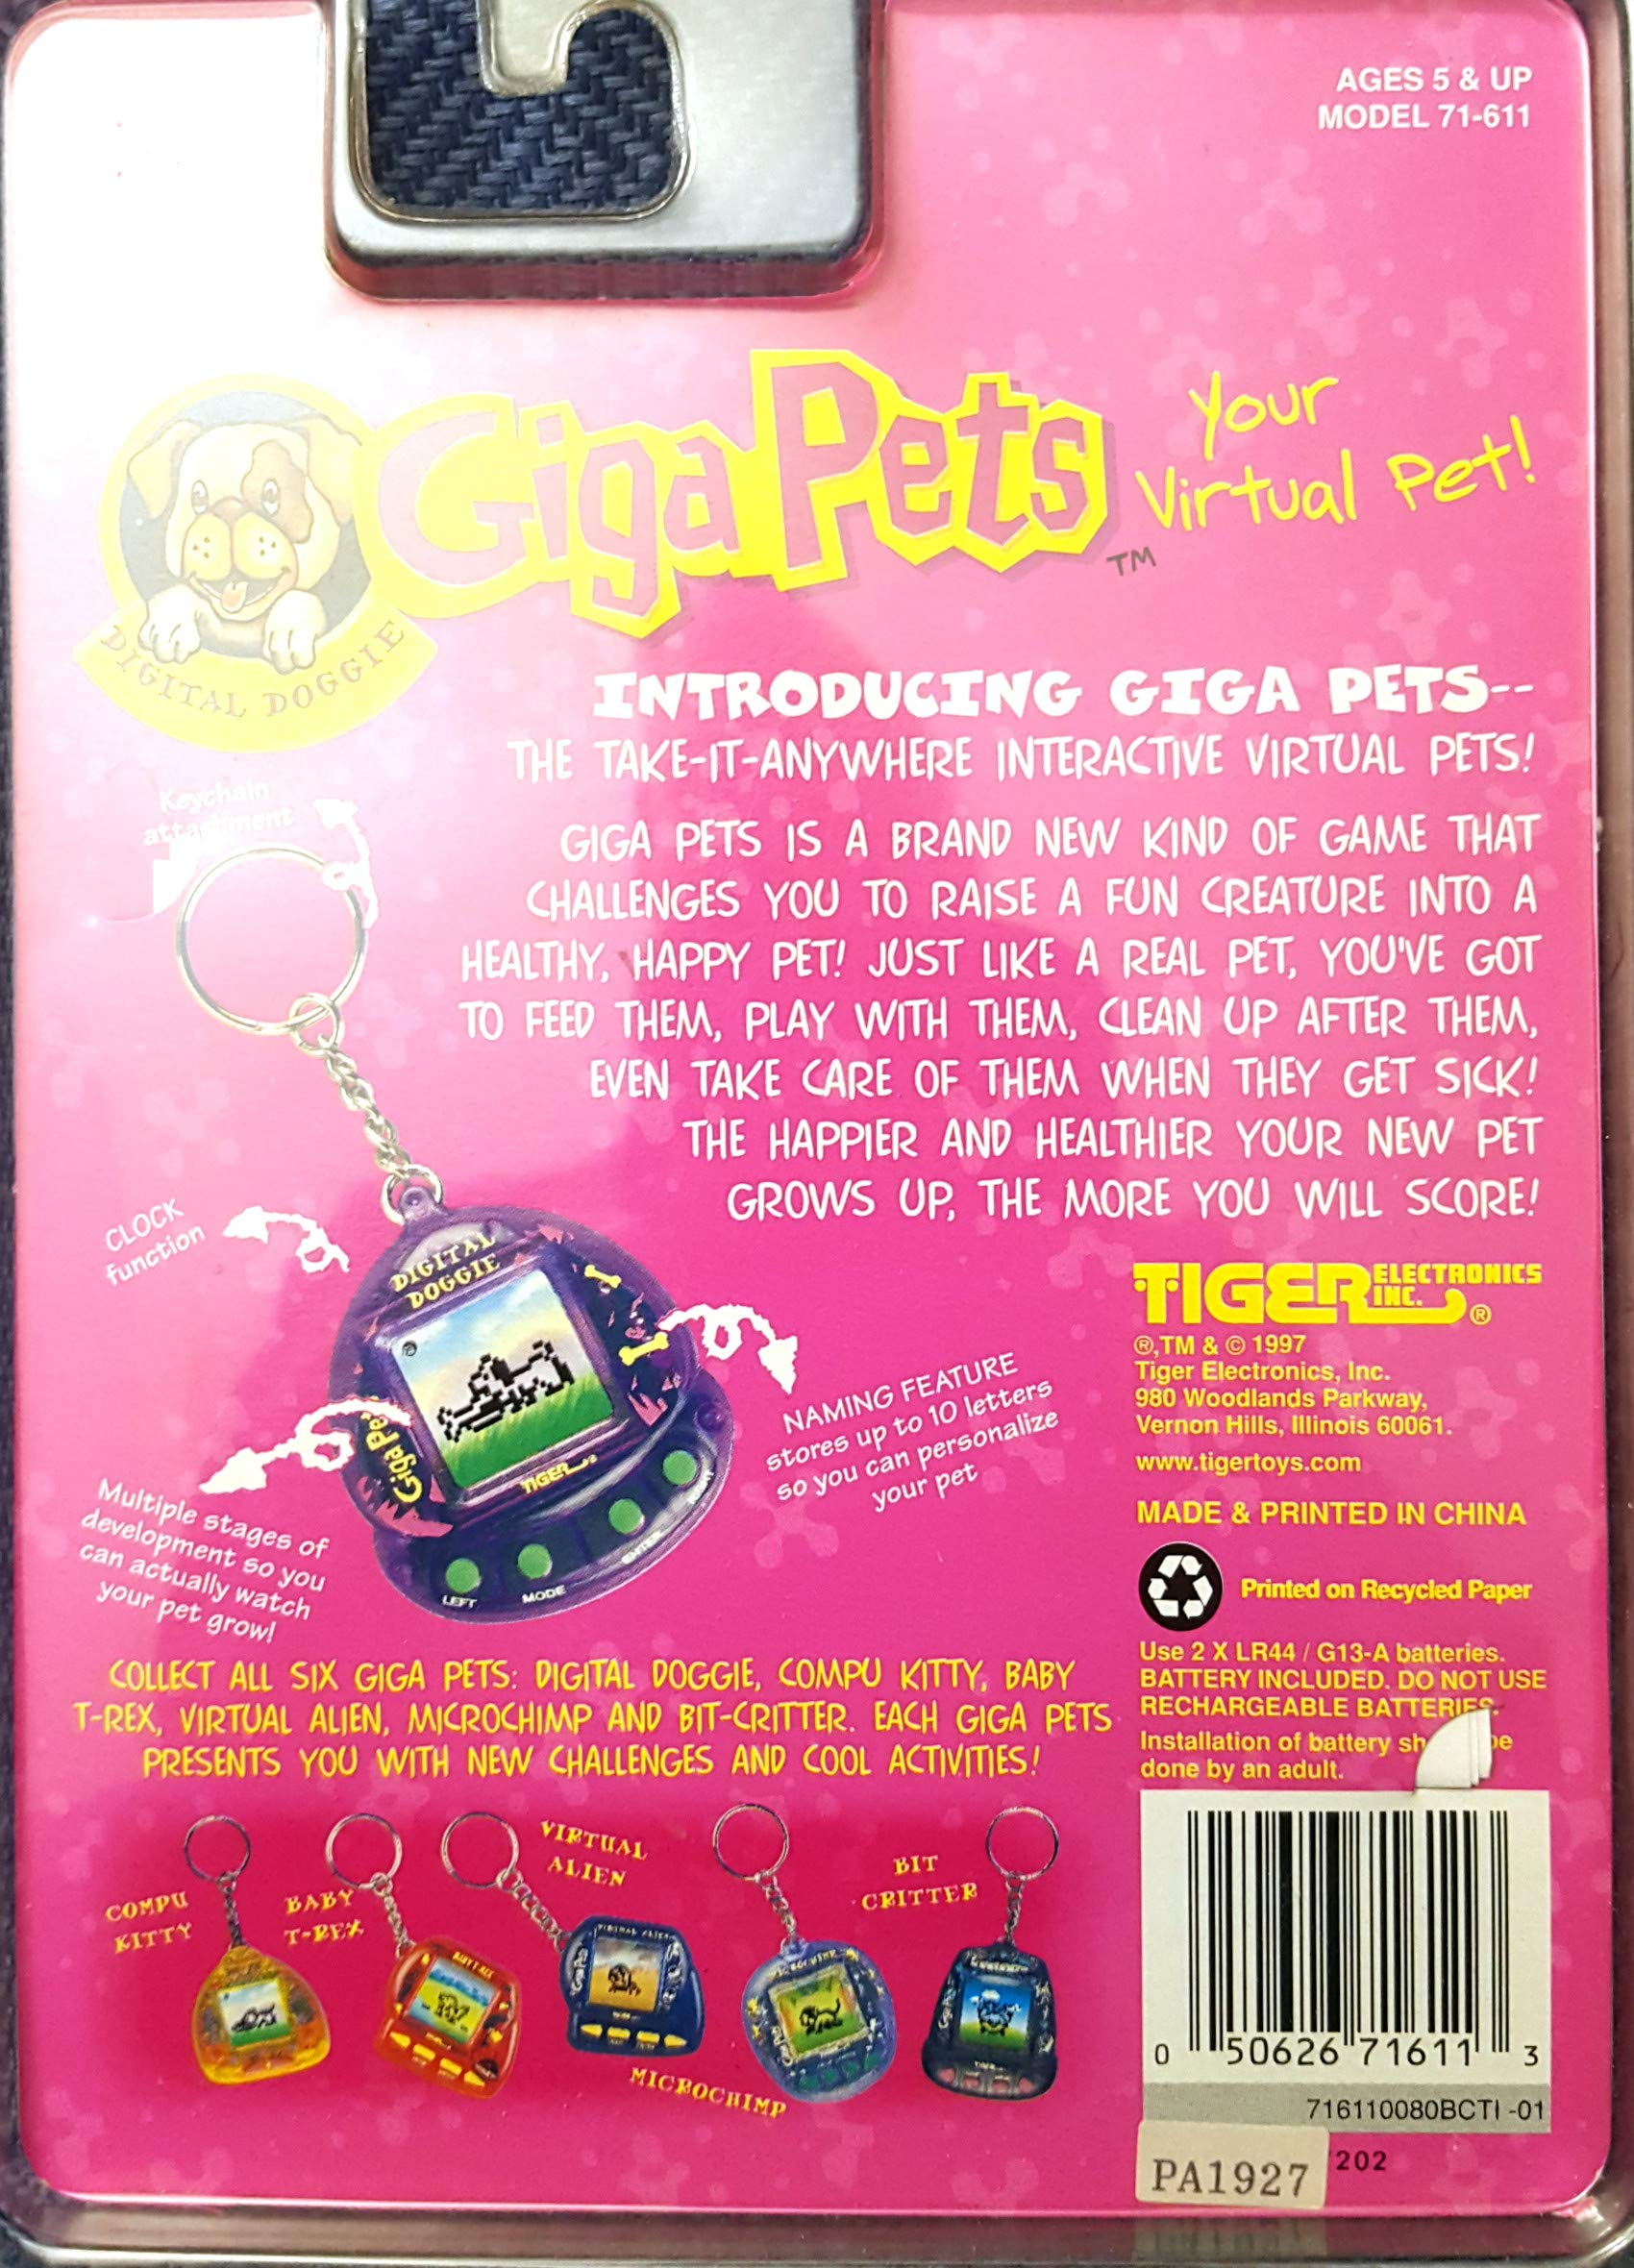 Giga Pets Virtual Digital Doggie LCD Game (1997) by Tiger Electronics (Image #2)